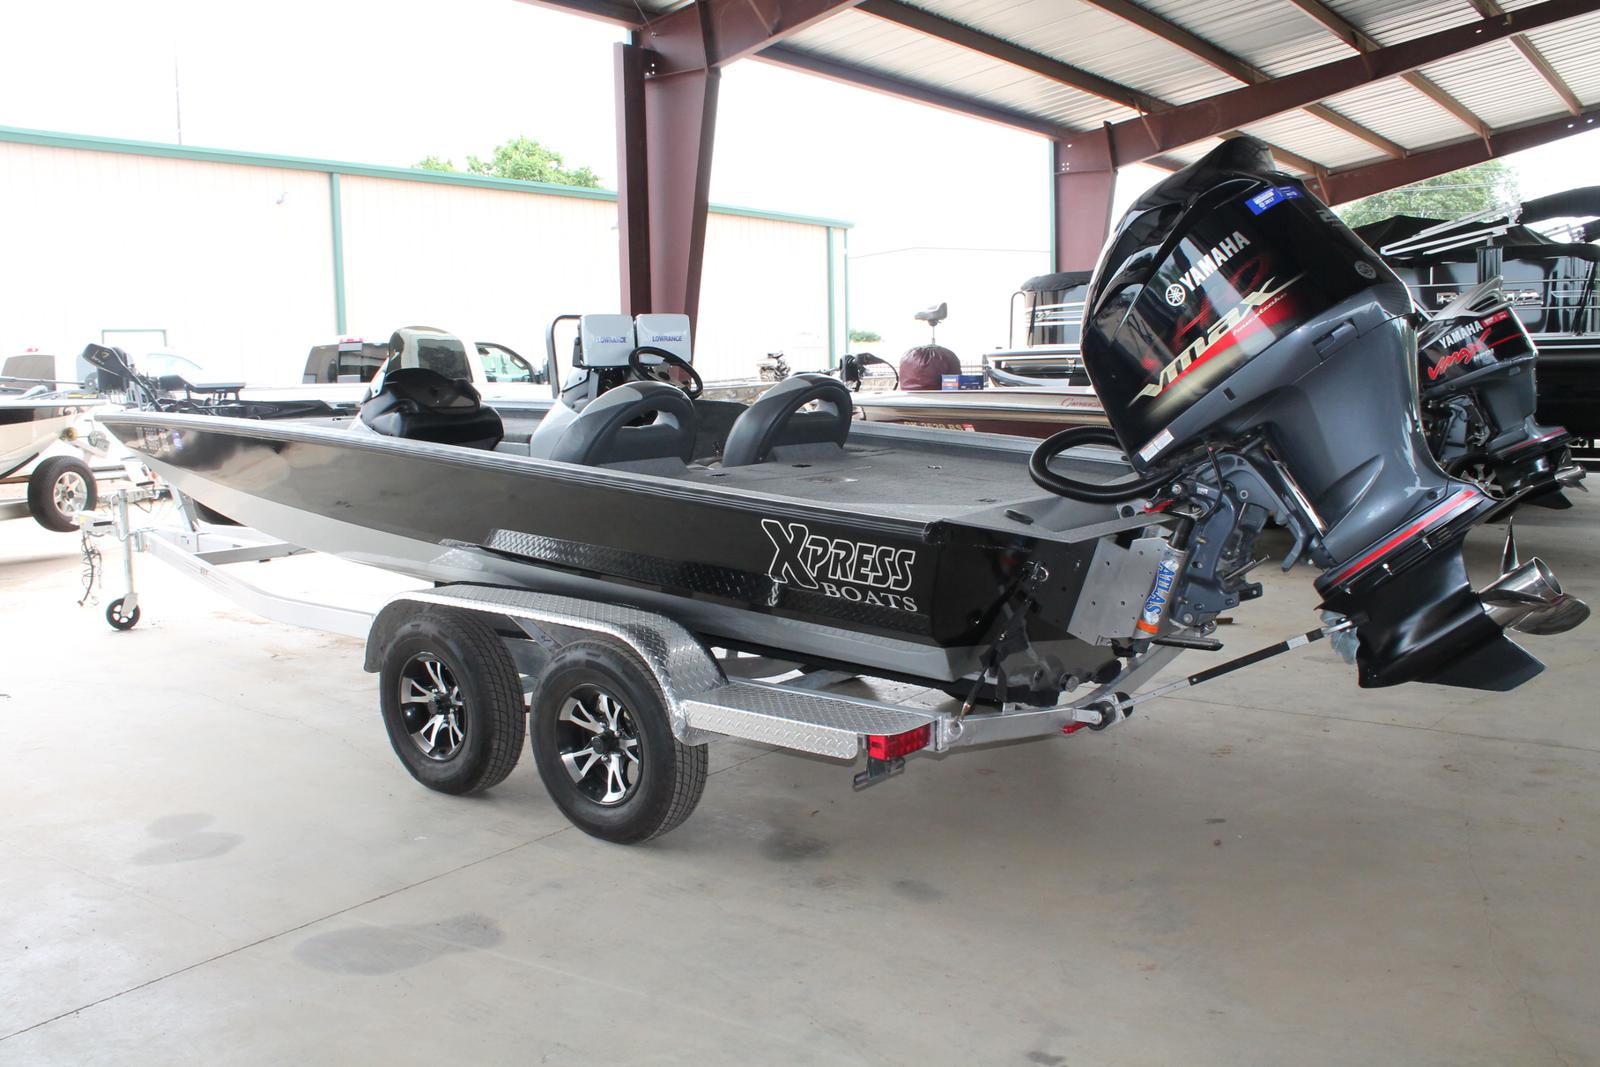 Used bass boats for sale - Page 9 of 43 - boats.com